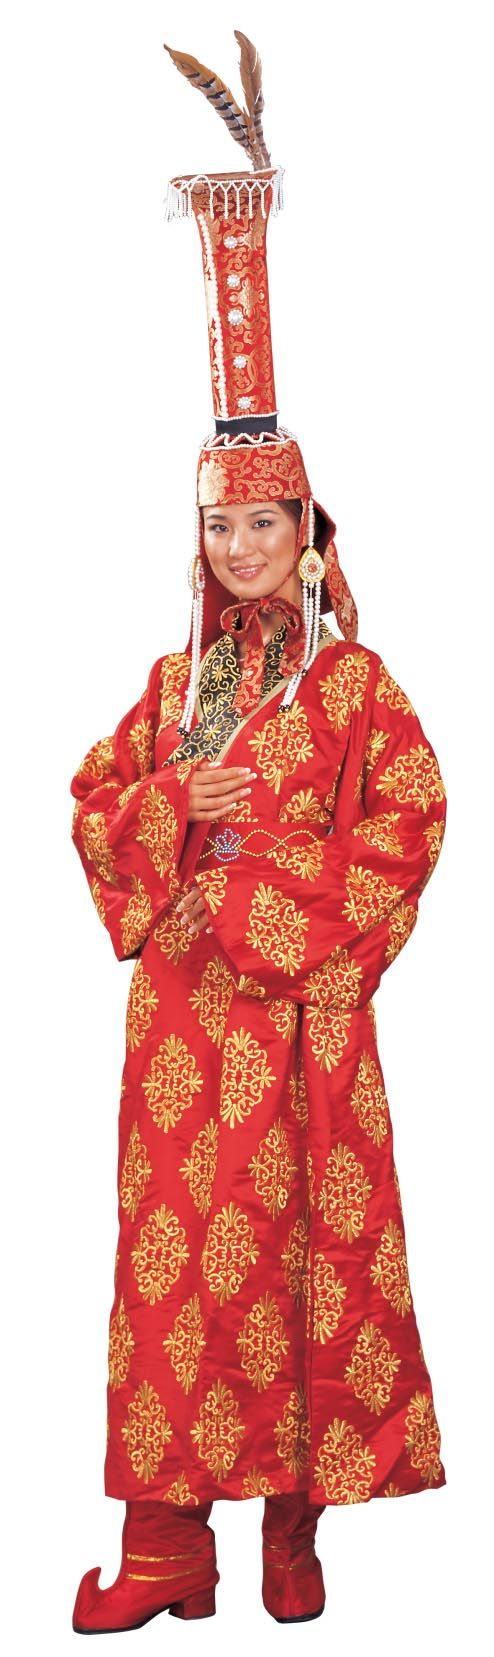 Women's Clothes from the Liao, Jin and Yuan Dynasties